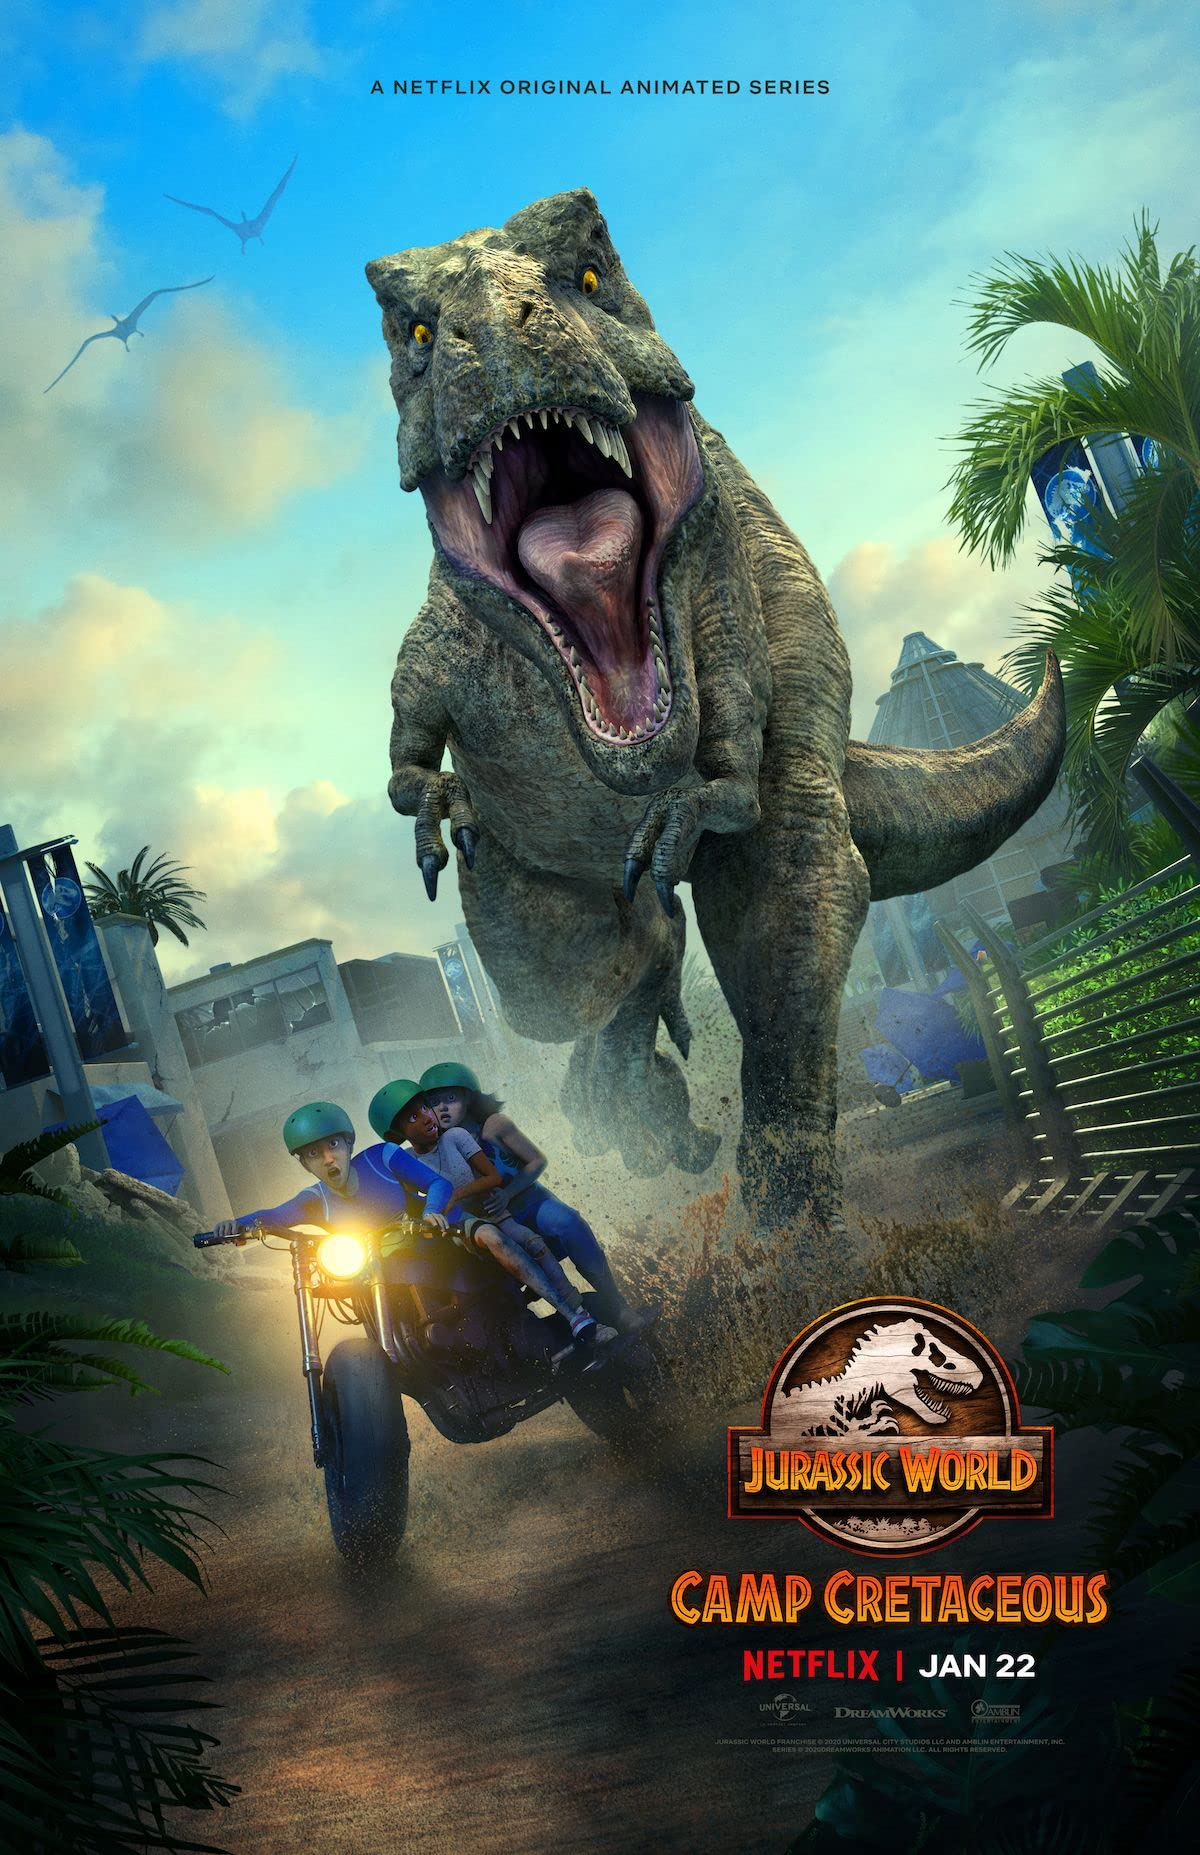 Jurassic World: Camp Cretaceous S02 (2021) Hindi Netflix Complete Web Series 600MB HDRip Download